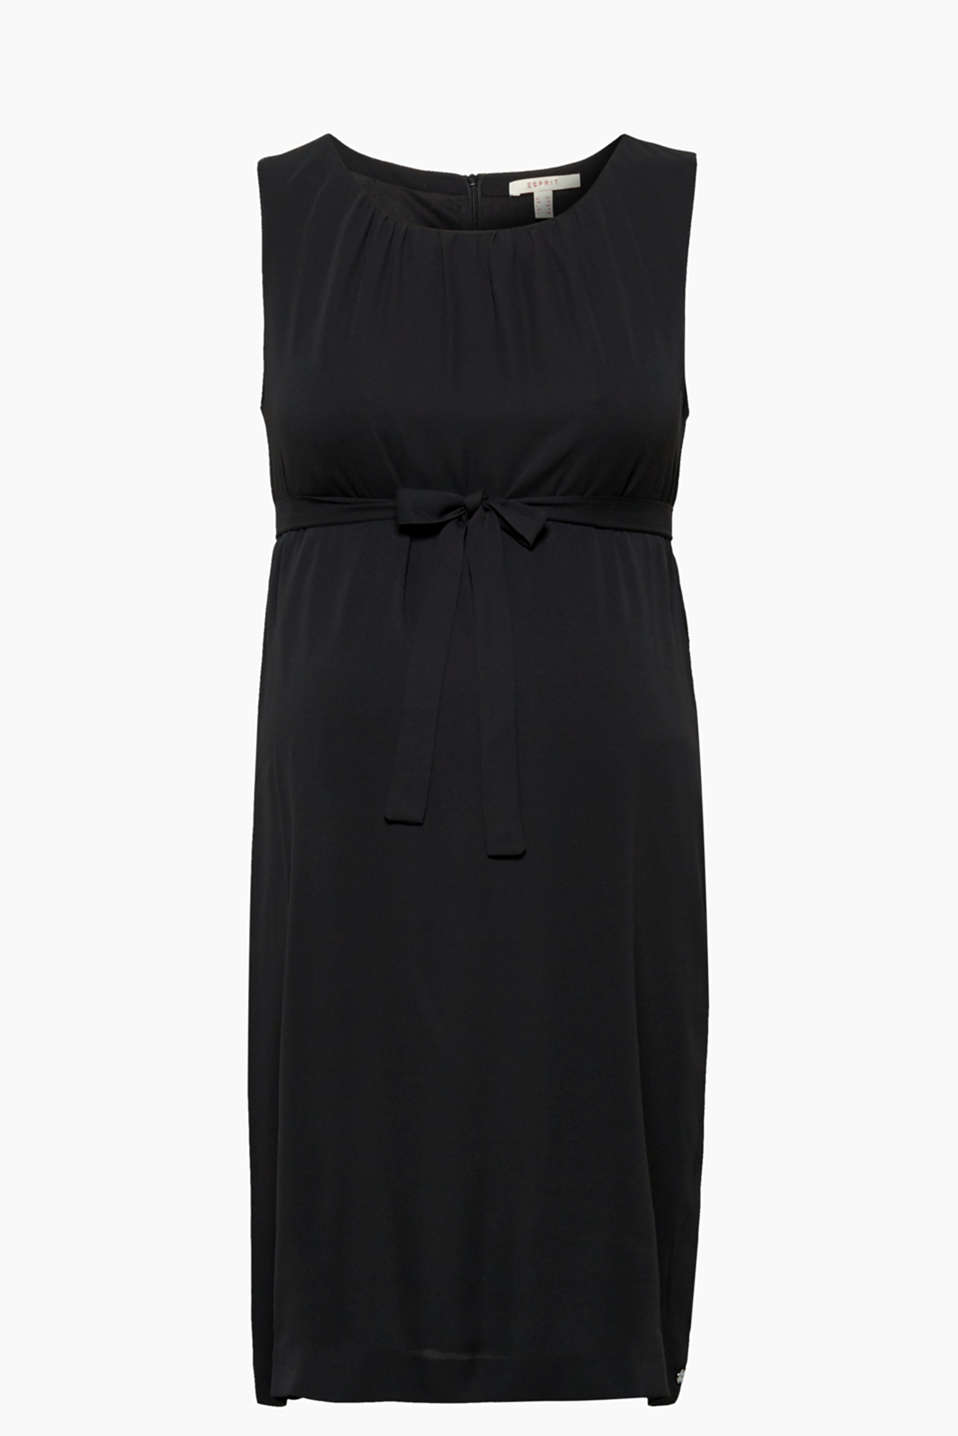 This flowing dress with a pleated neckline and a tie-around belt: simply put it on and look good!